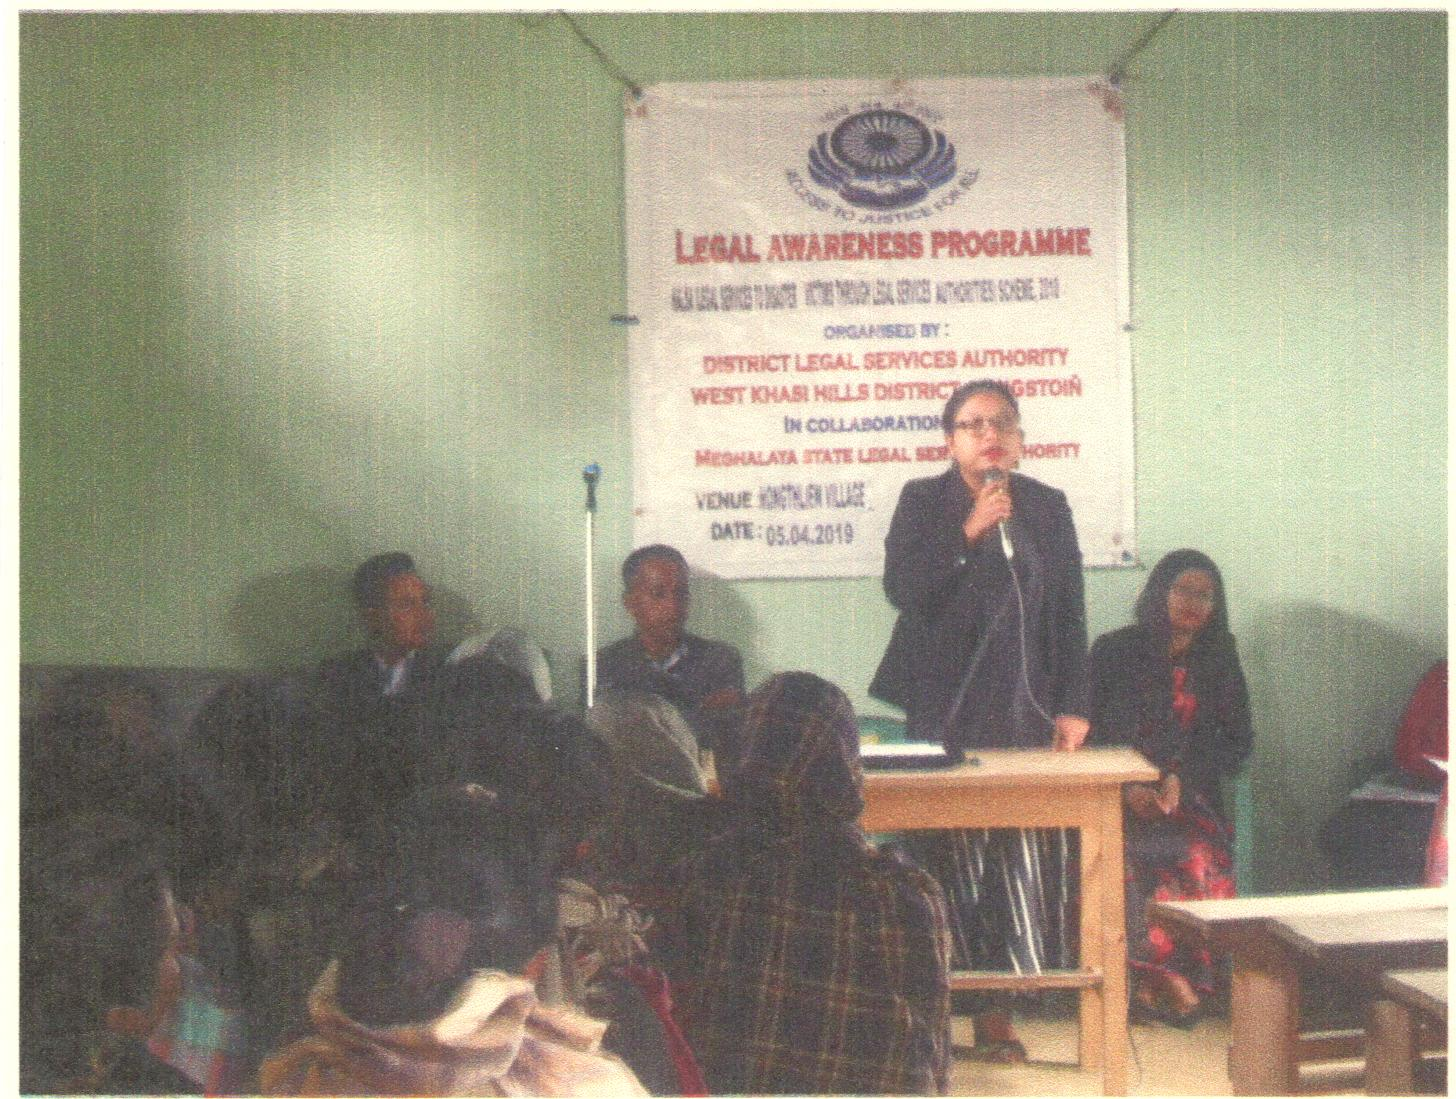 Legal Awareness Programme held at Nongthlien village, Nongstoin on the 5-04-2019